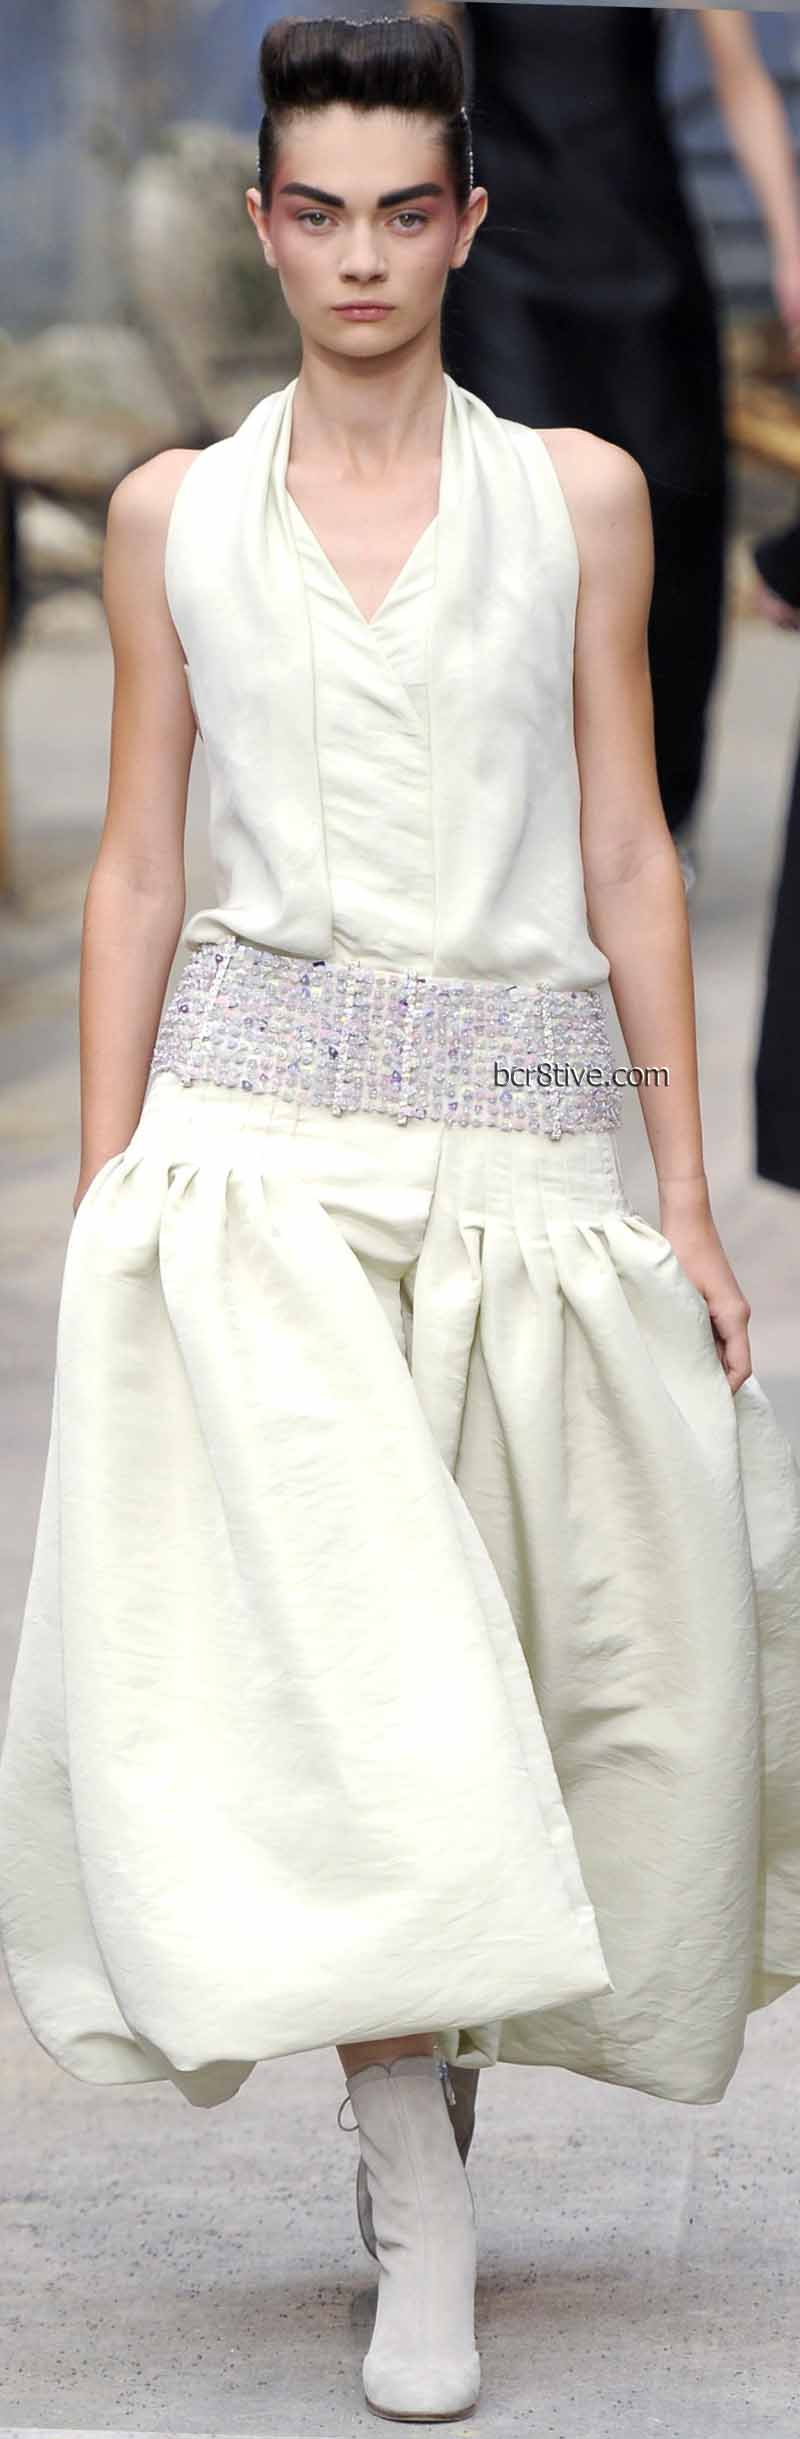 Chanel Fall Winter 2013-14 Haute Couture